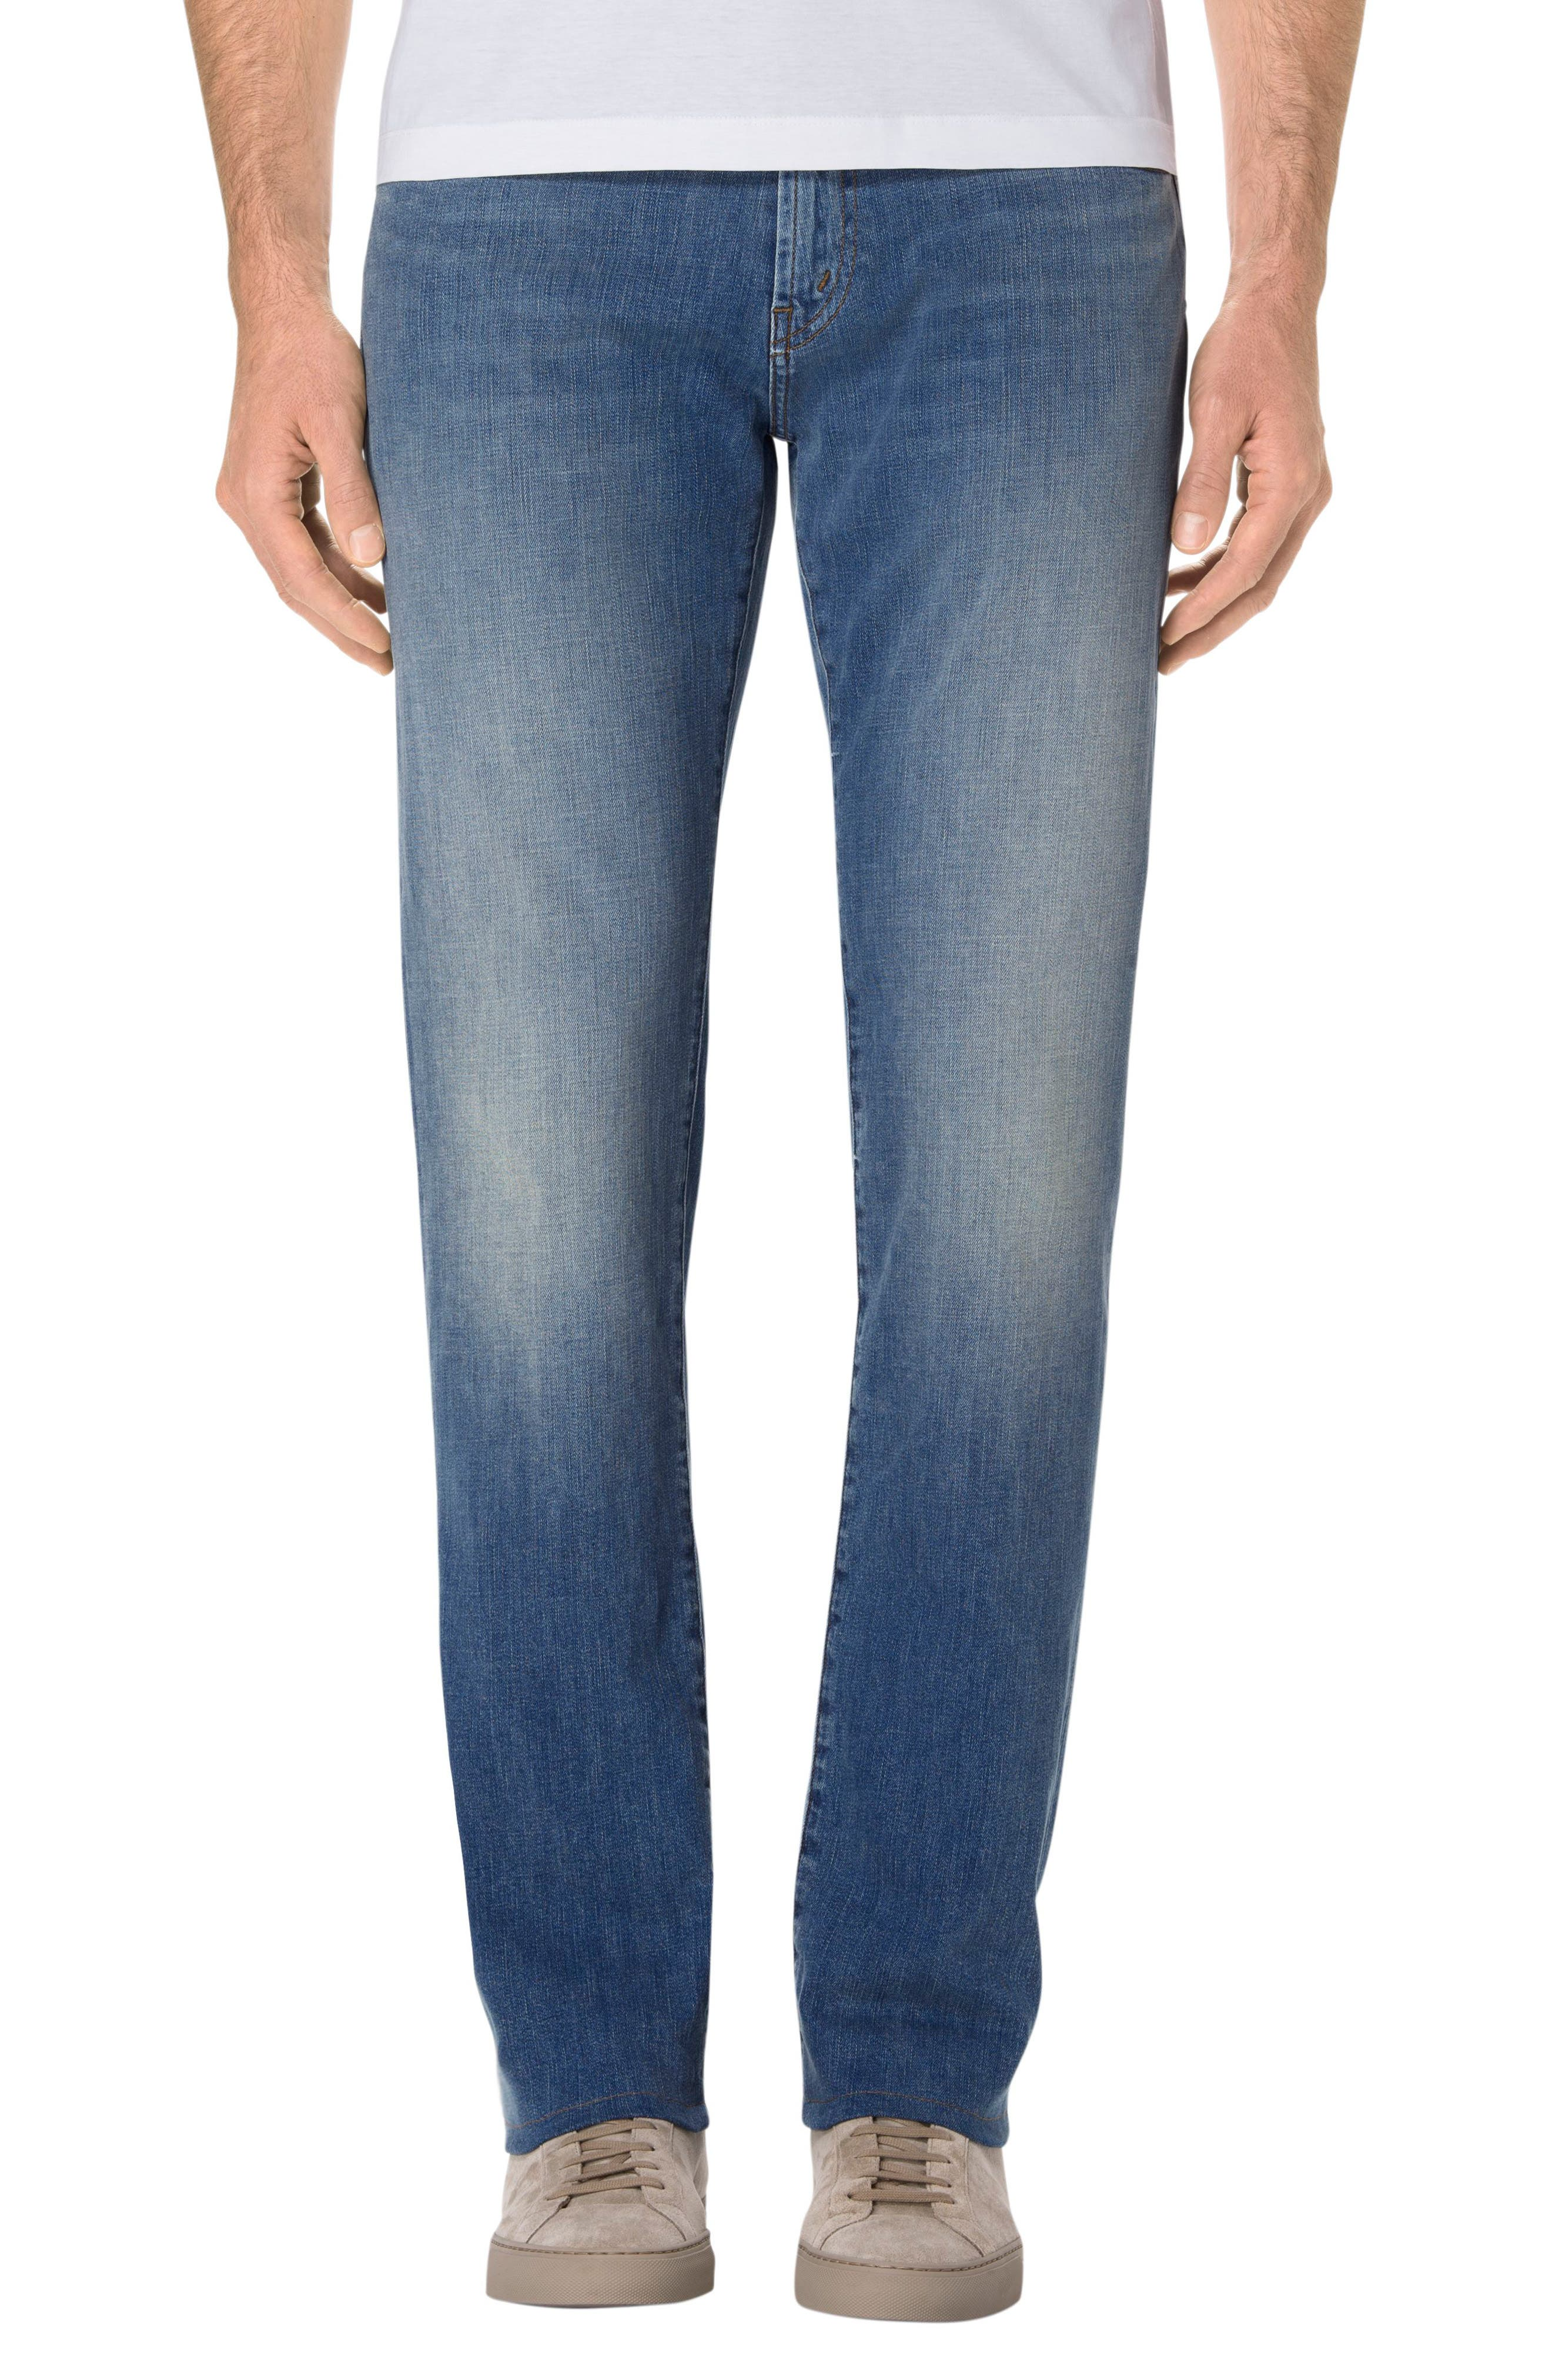 Kane Slim Straight Fit Jeans,                         Main,                         color, 452